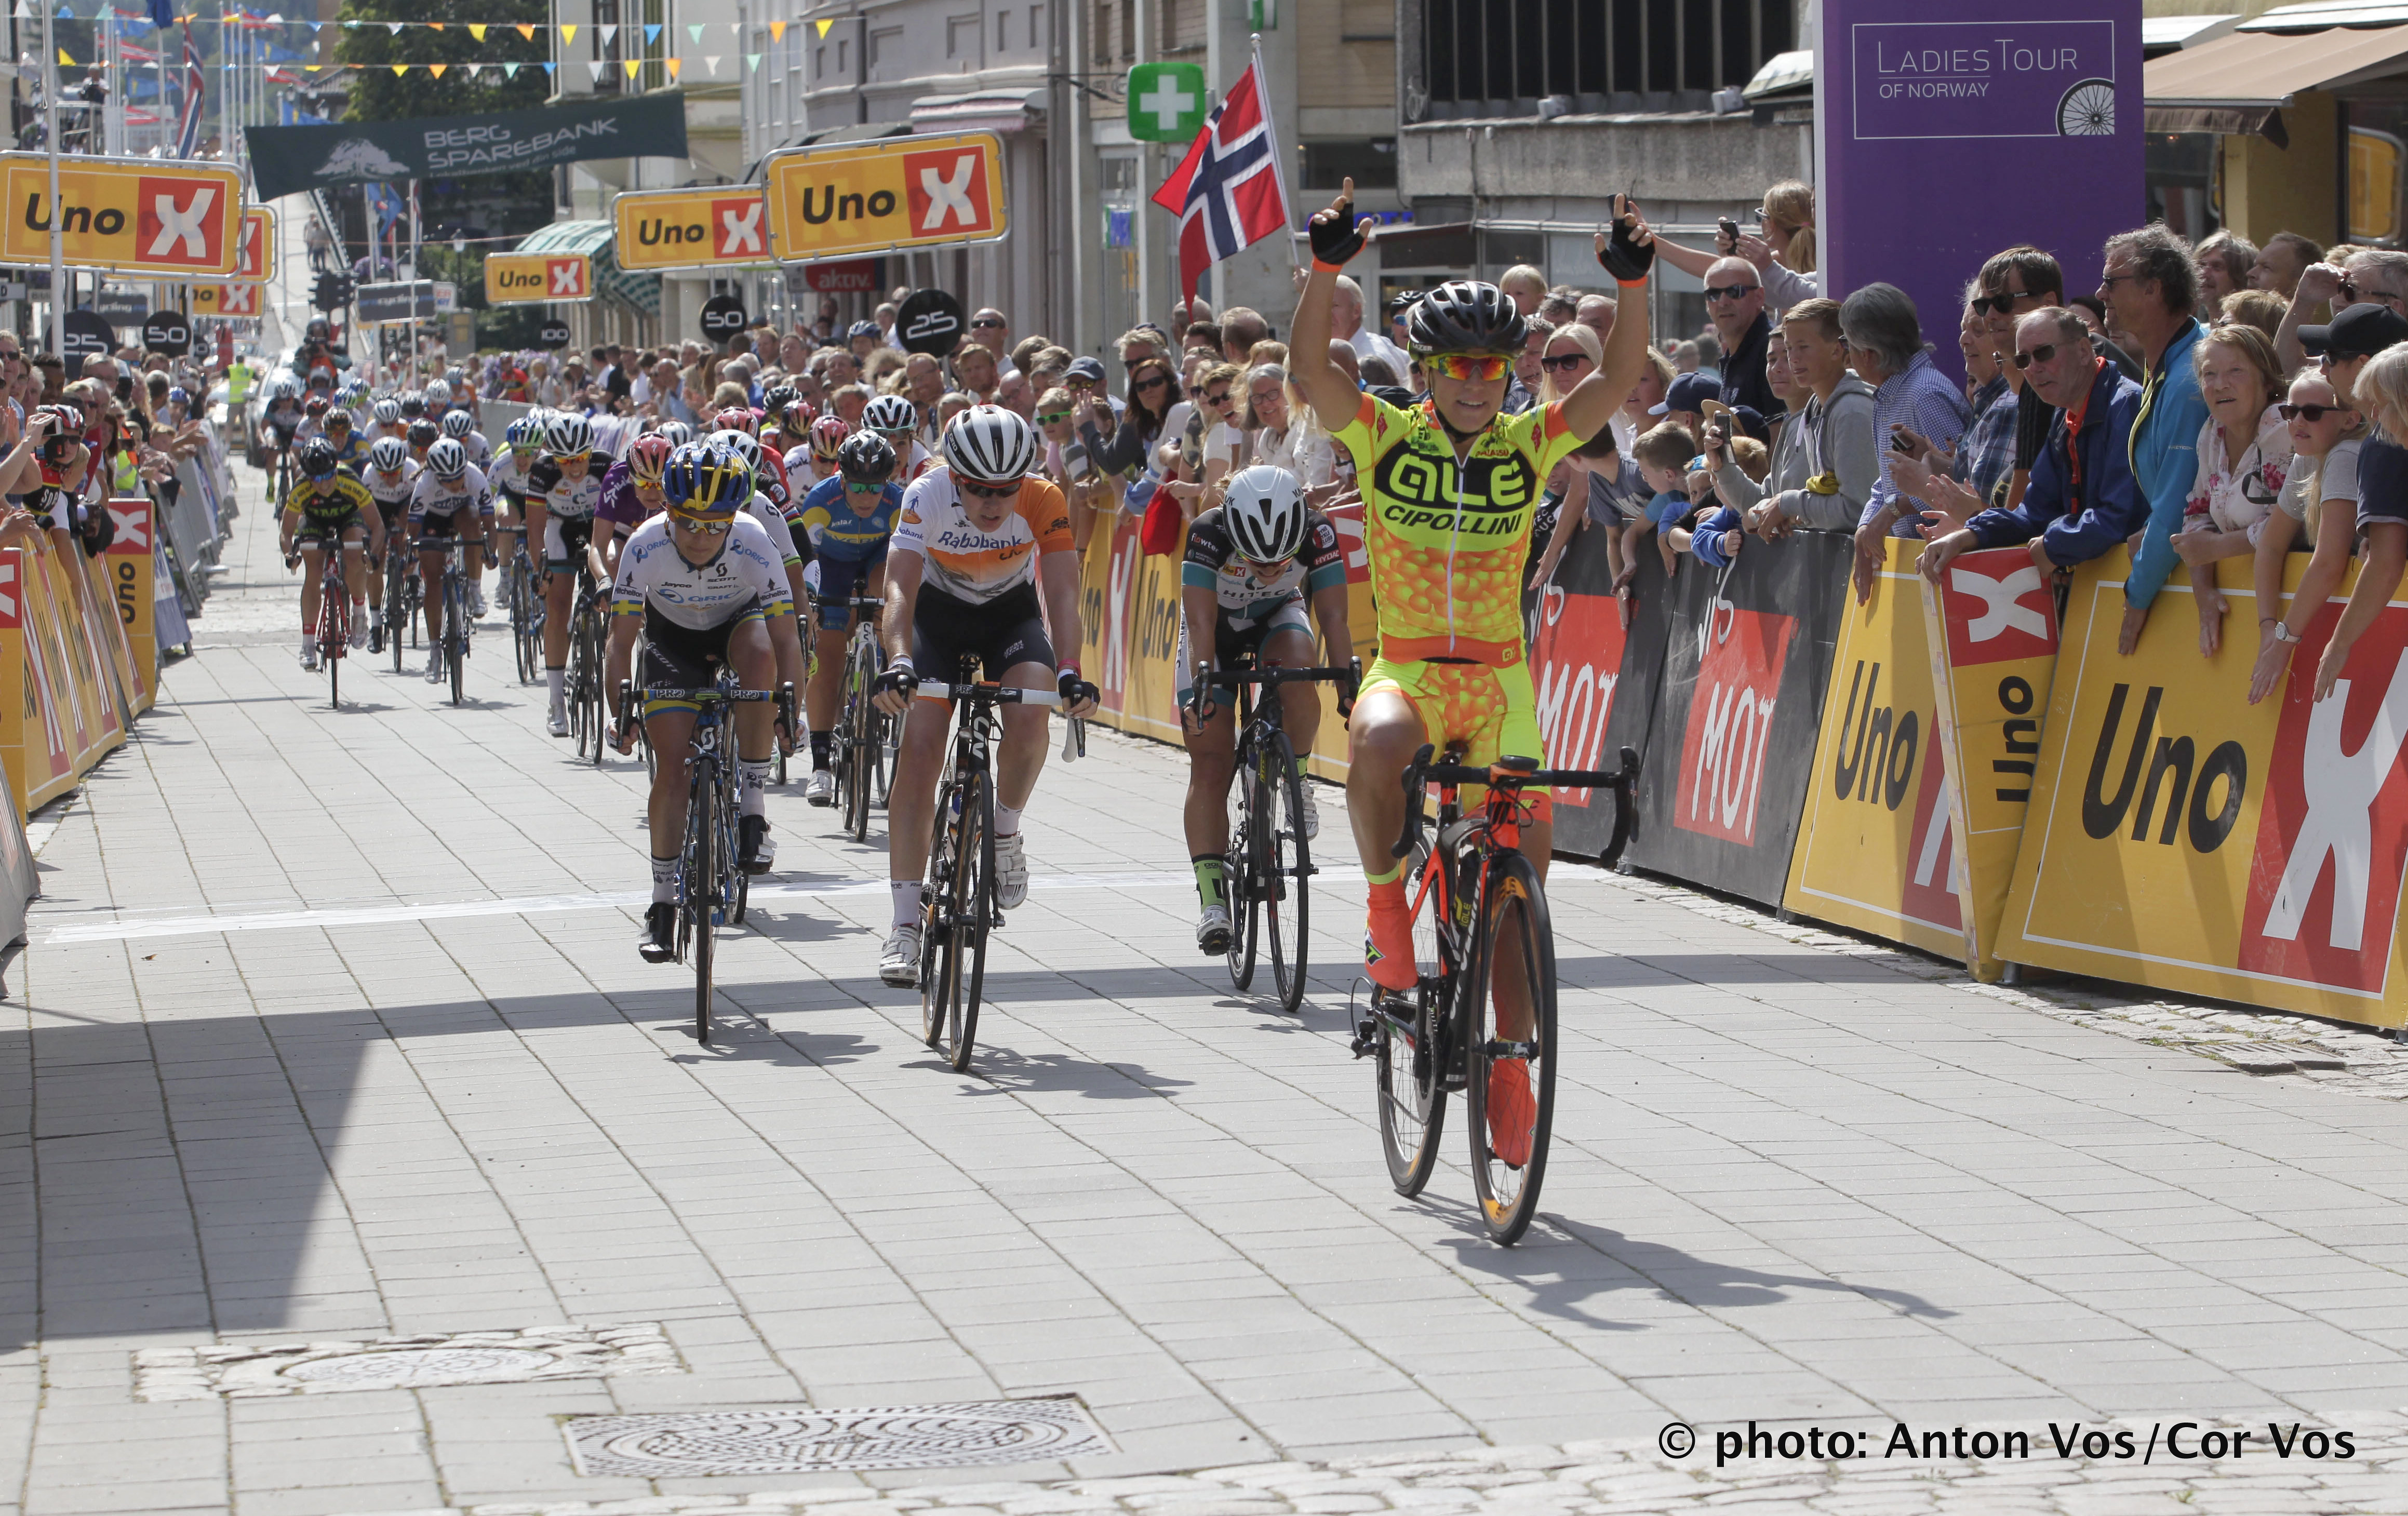 Halden - Norway - wielrennen - cycling - radsport - cyclisme -  Olds Shelley of Ale Cipollini (ITA) - Anna van der Breggen of Rabobank Liv Women Cycling Team - Moberg Emilie of Hitec Products - Johansson Emma of Orica AIS  pictured during  stage - 2 of the Ladiestour of Norway 2015 - photo Anton Vos/Cor Vos © 2015